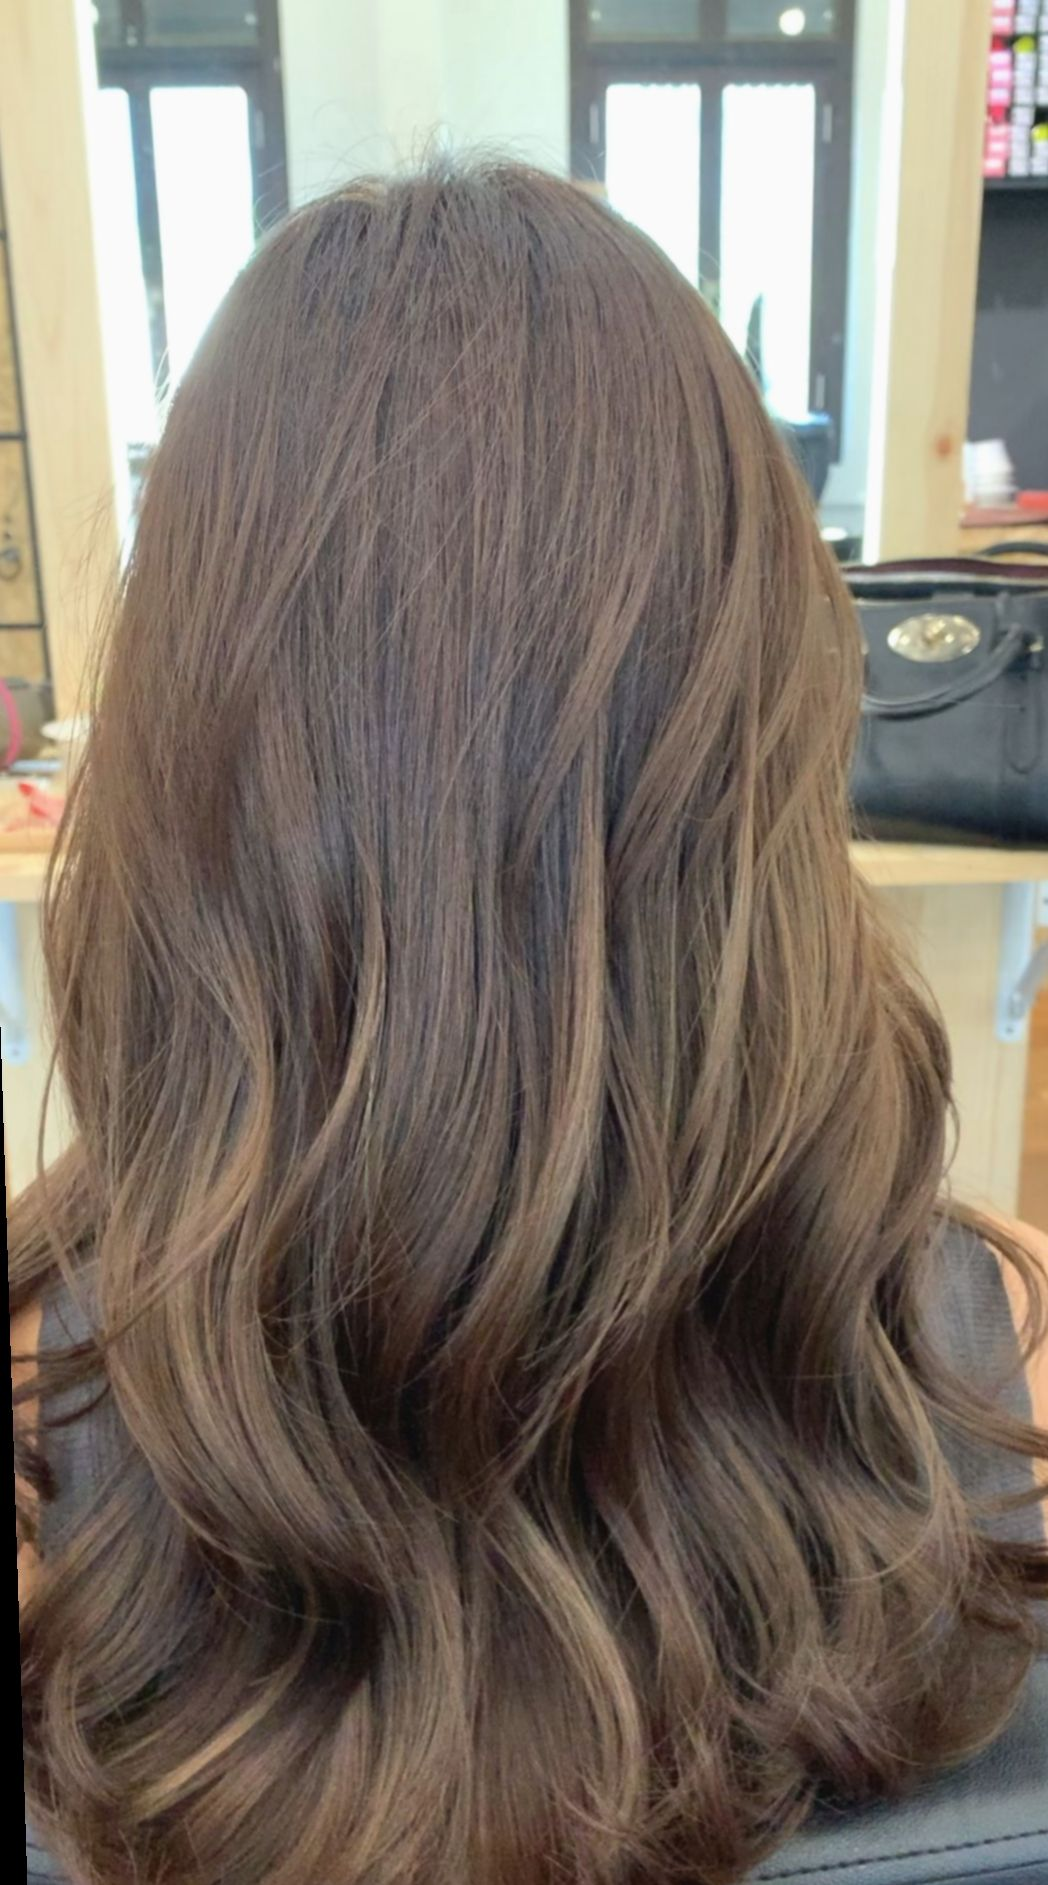 14 Hairstyles Women Videos Asian Hair Color For Morena Skin Hair Styles Hair Color Balayage